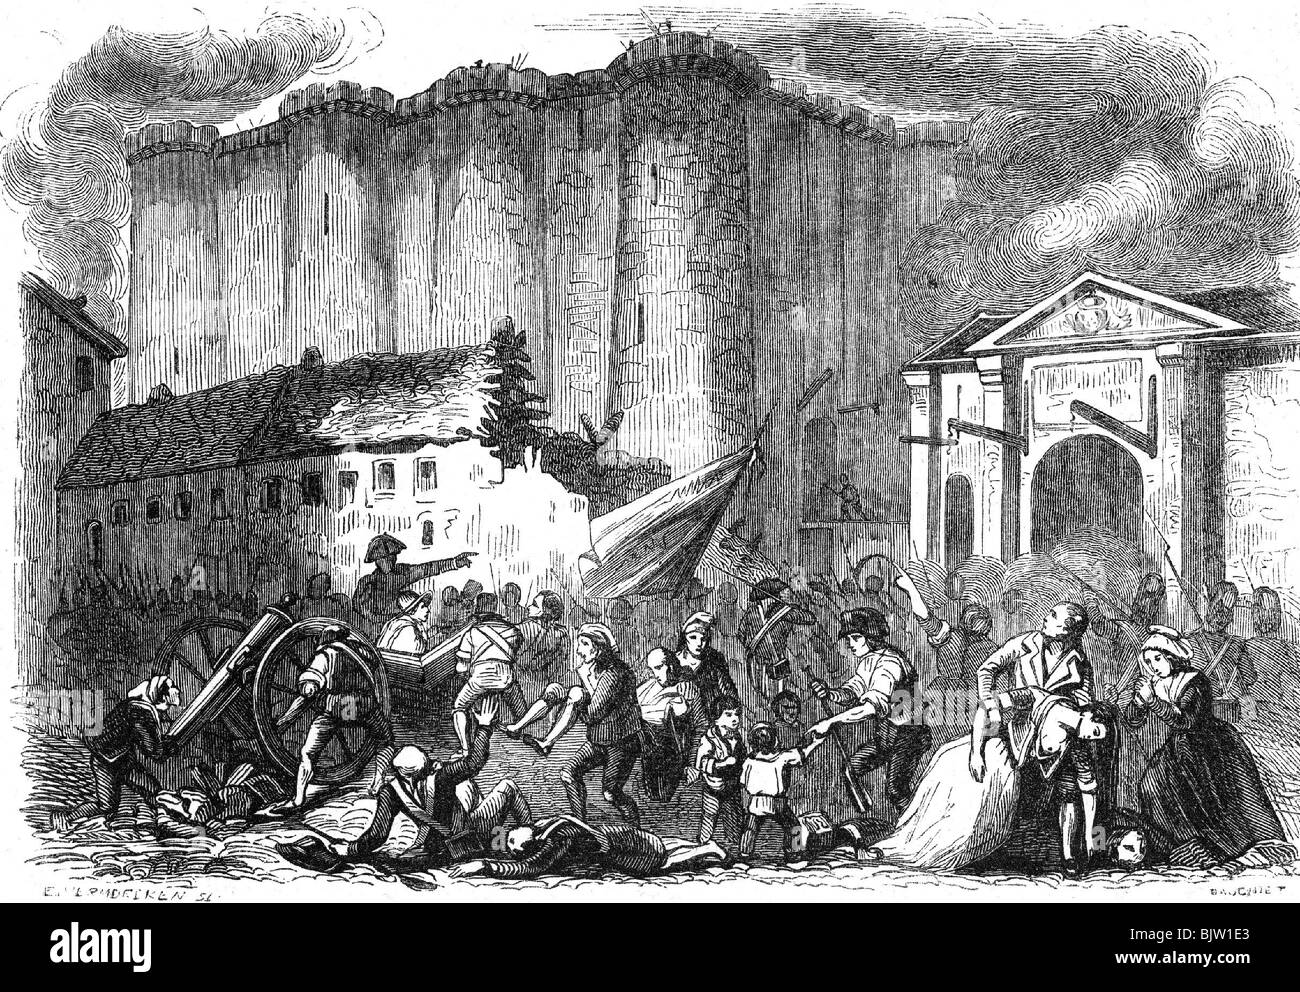 geography / travel, France, French Revolution 1789, storming of the Bastille, 14.7.1789, 18th century, historic, - Stock Image